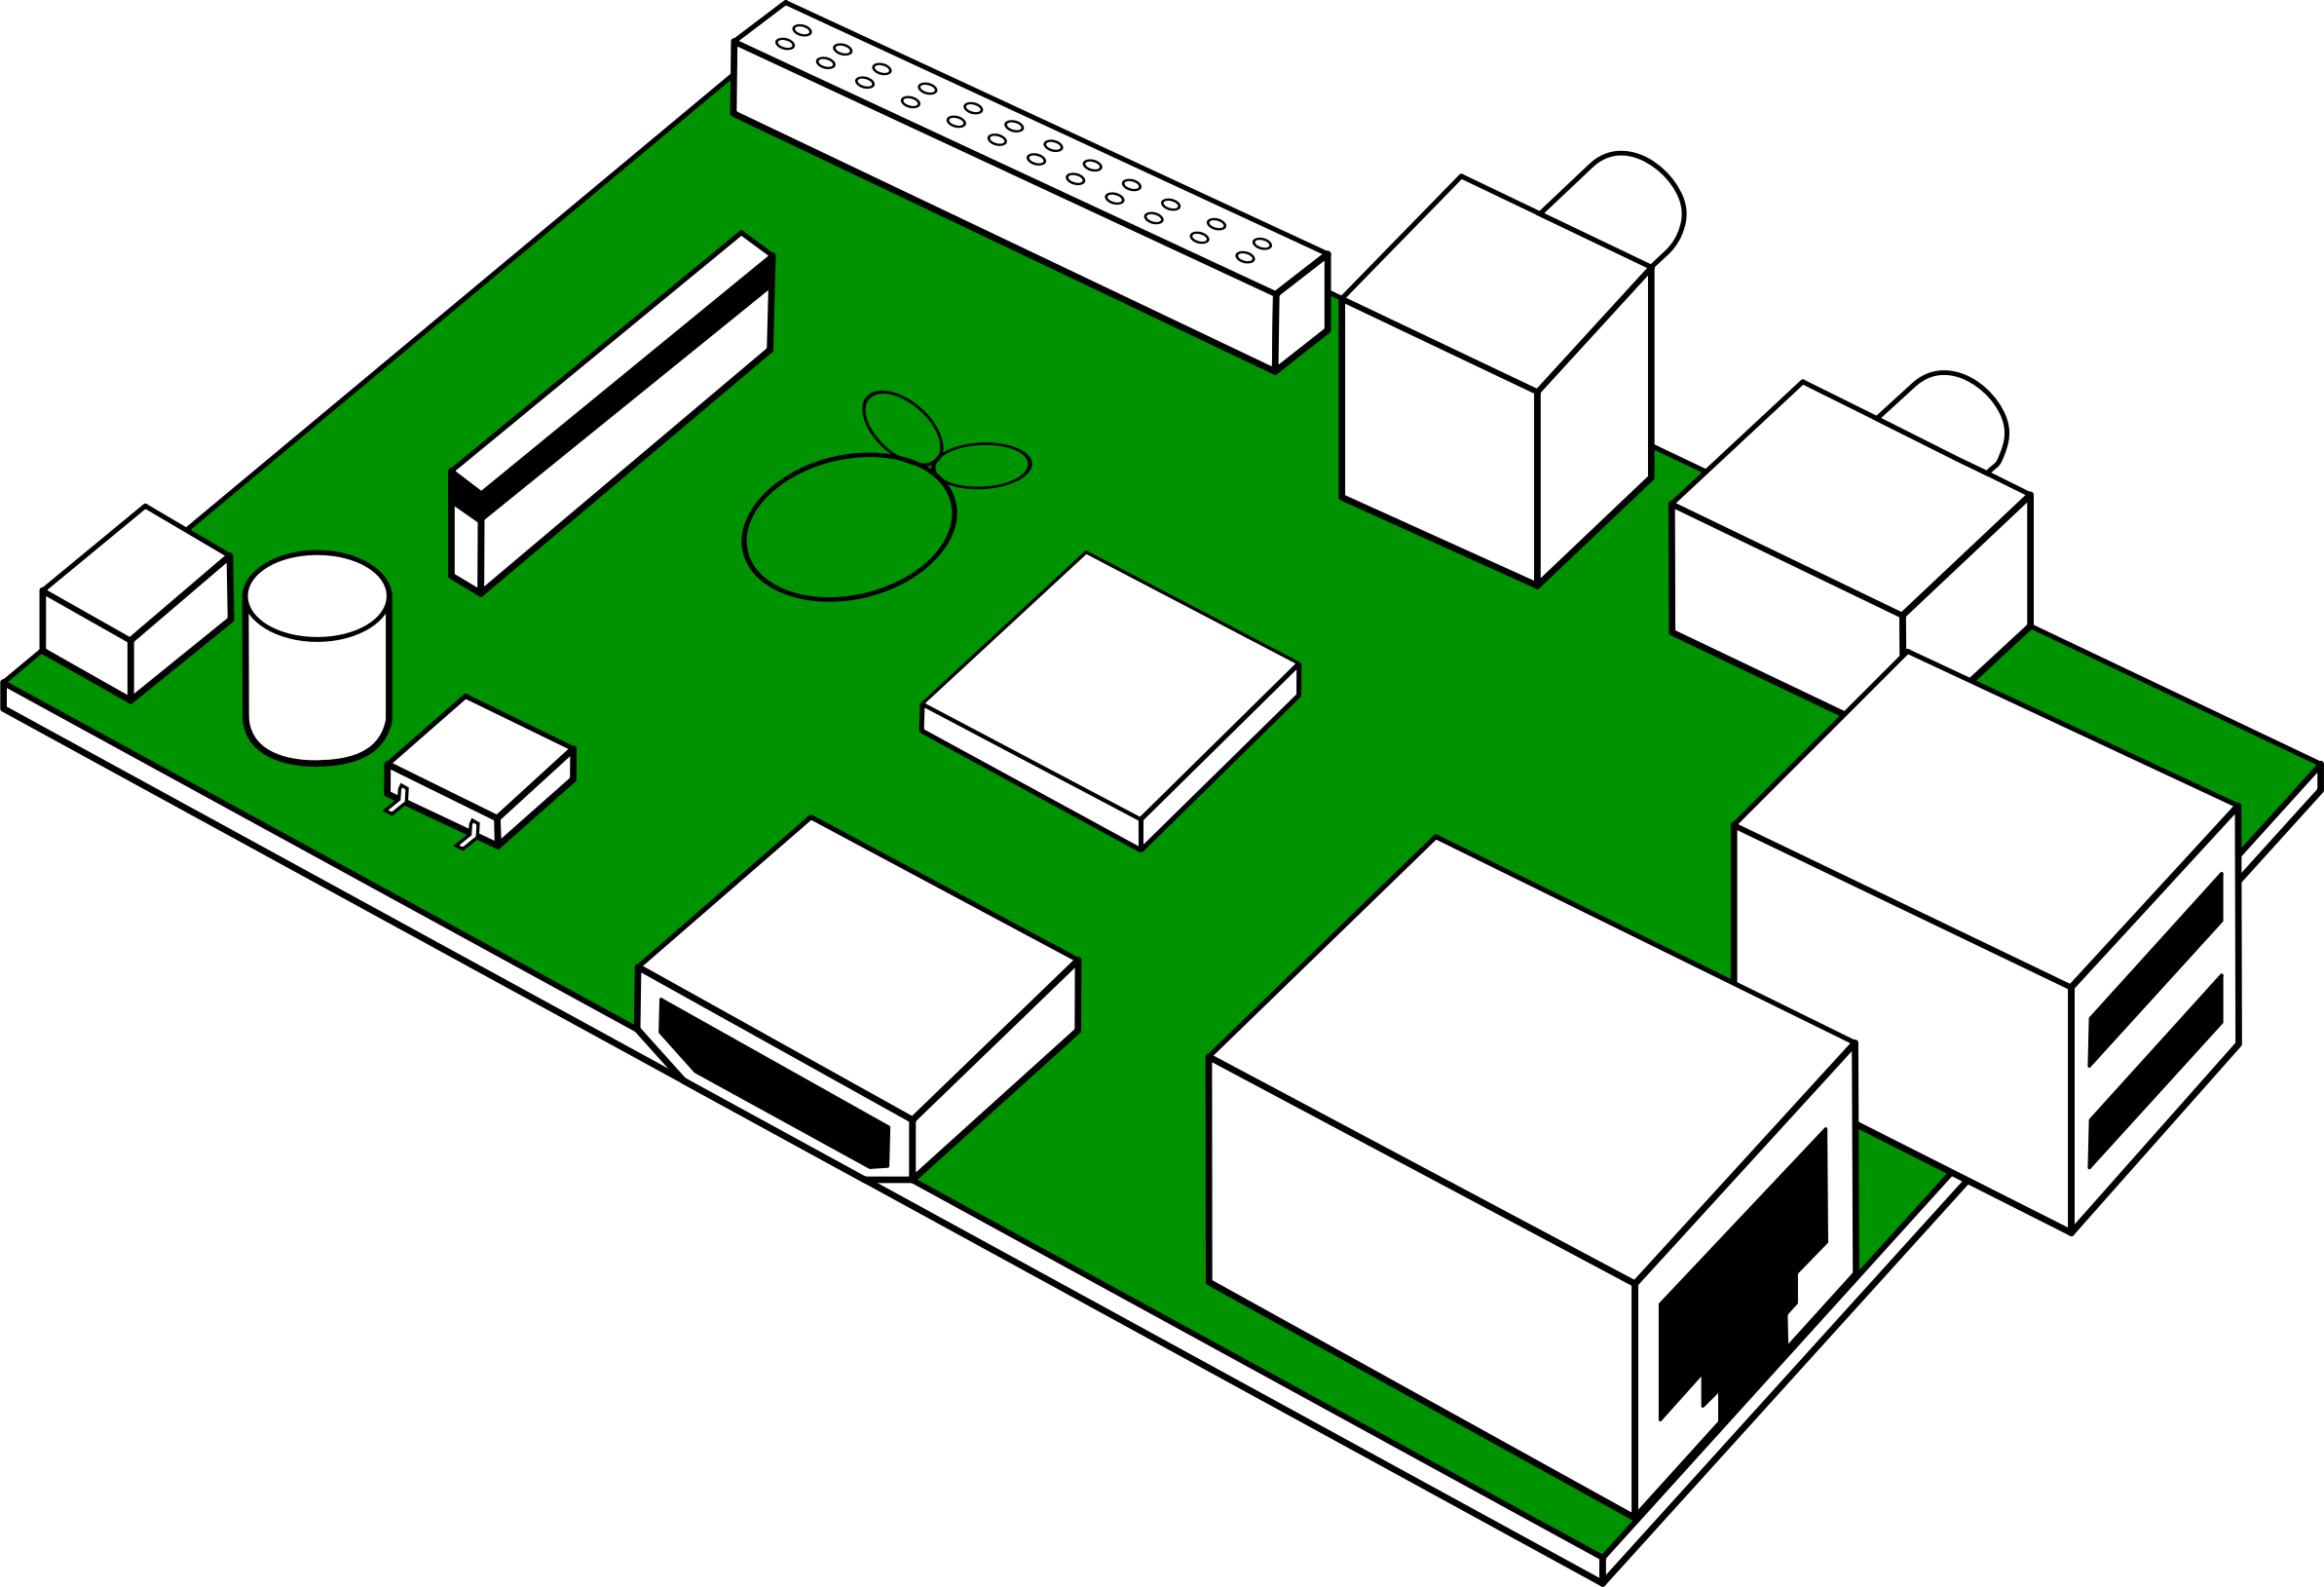 Raspberry pi 2 clipart image freeuse download Raspberry pi clipart - ClipartFest image freeuse download